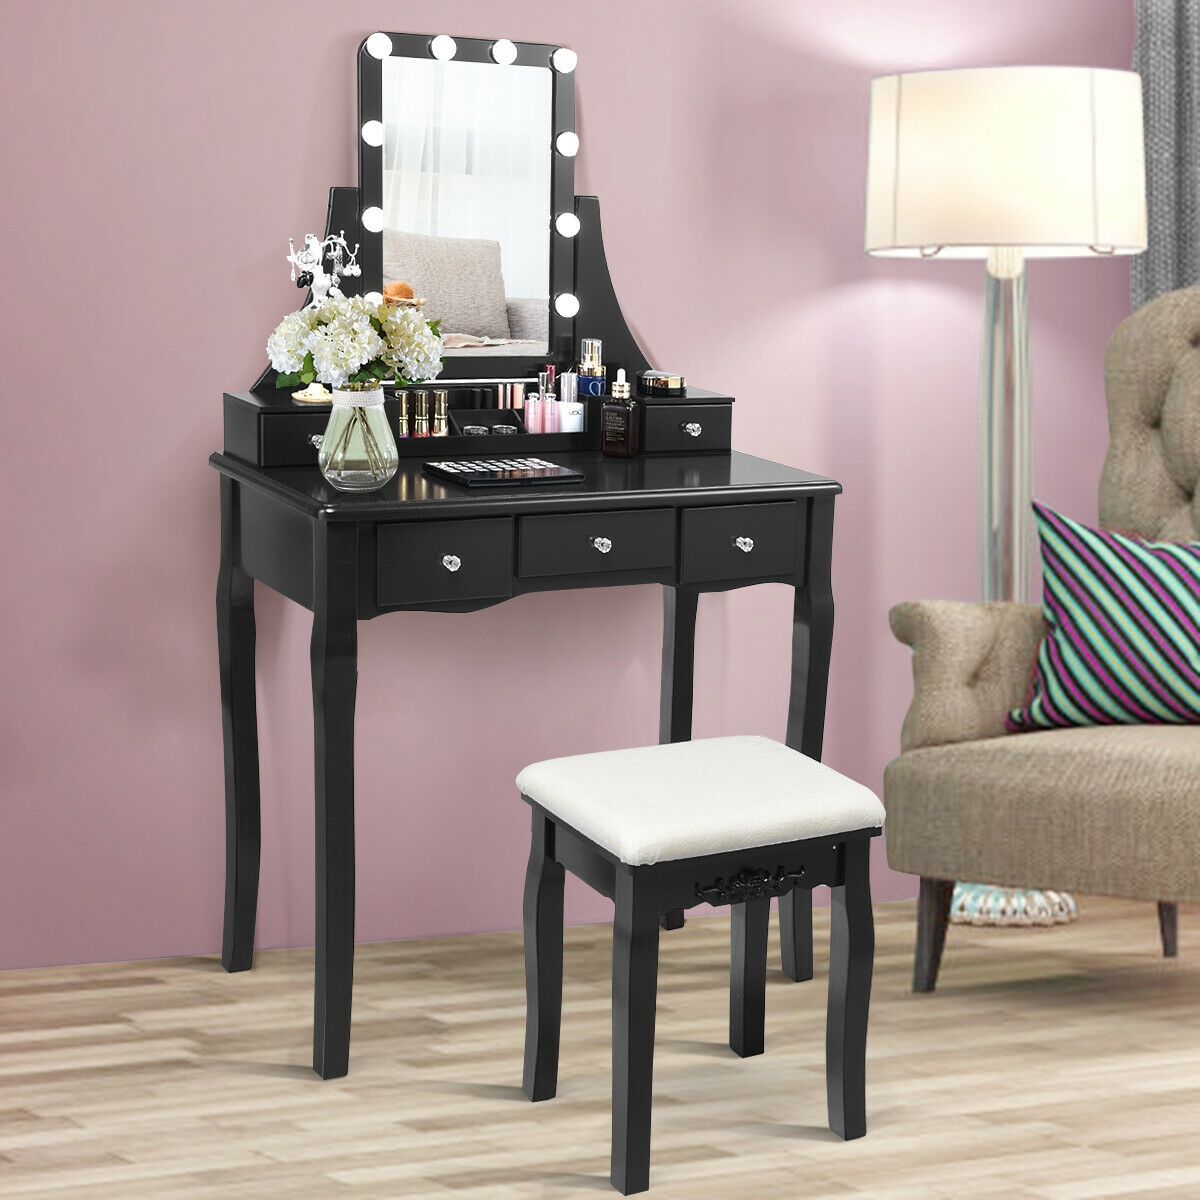 Image of 10 Dimmable Light Bulbs Vanity Dressing Table with 2 Dividers and Cushioned Stool